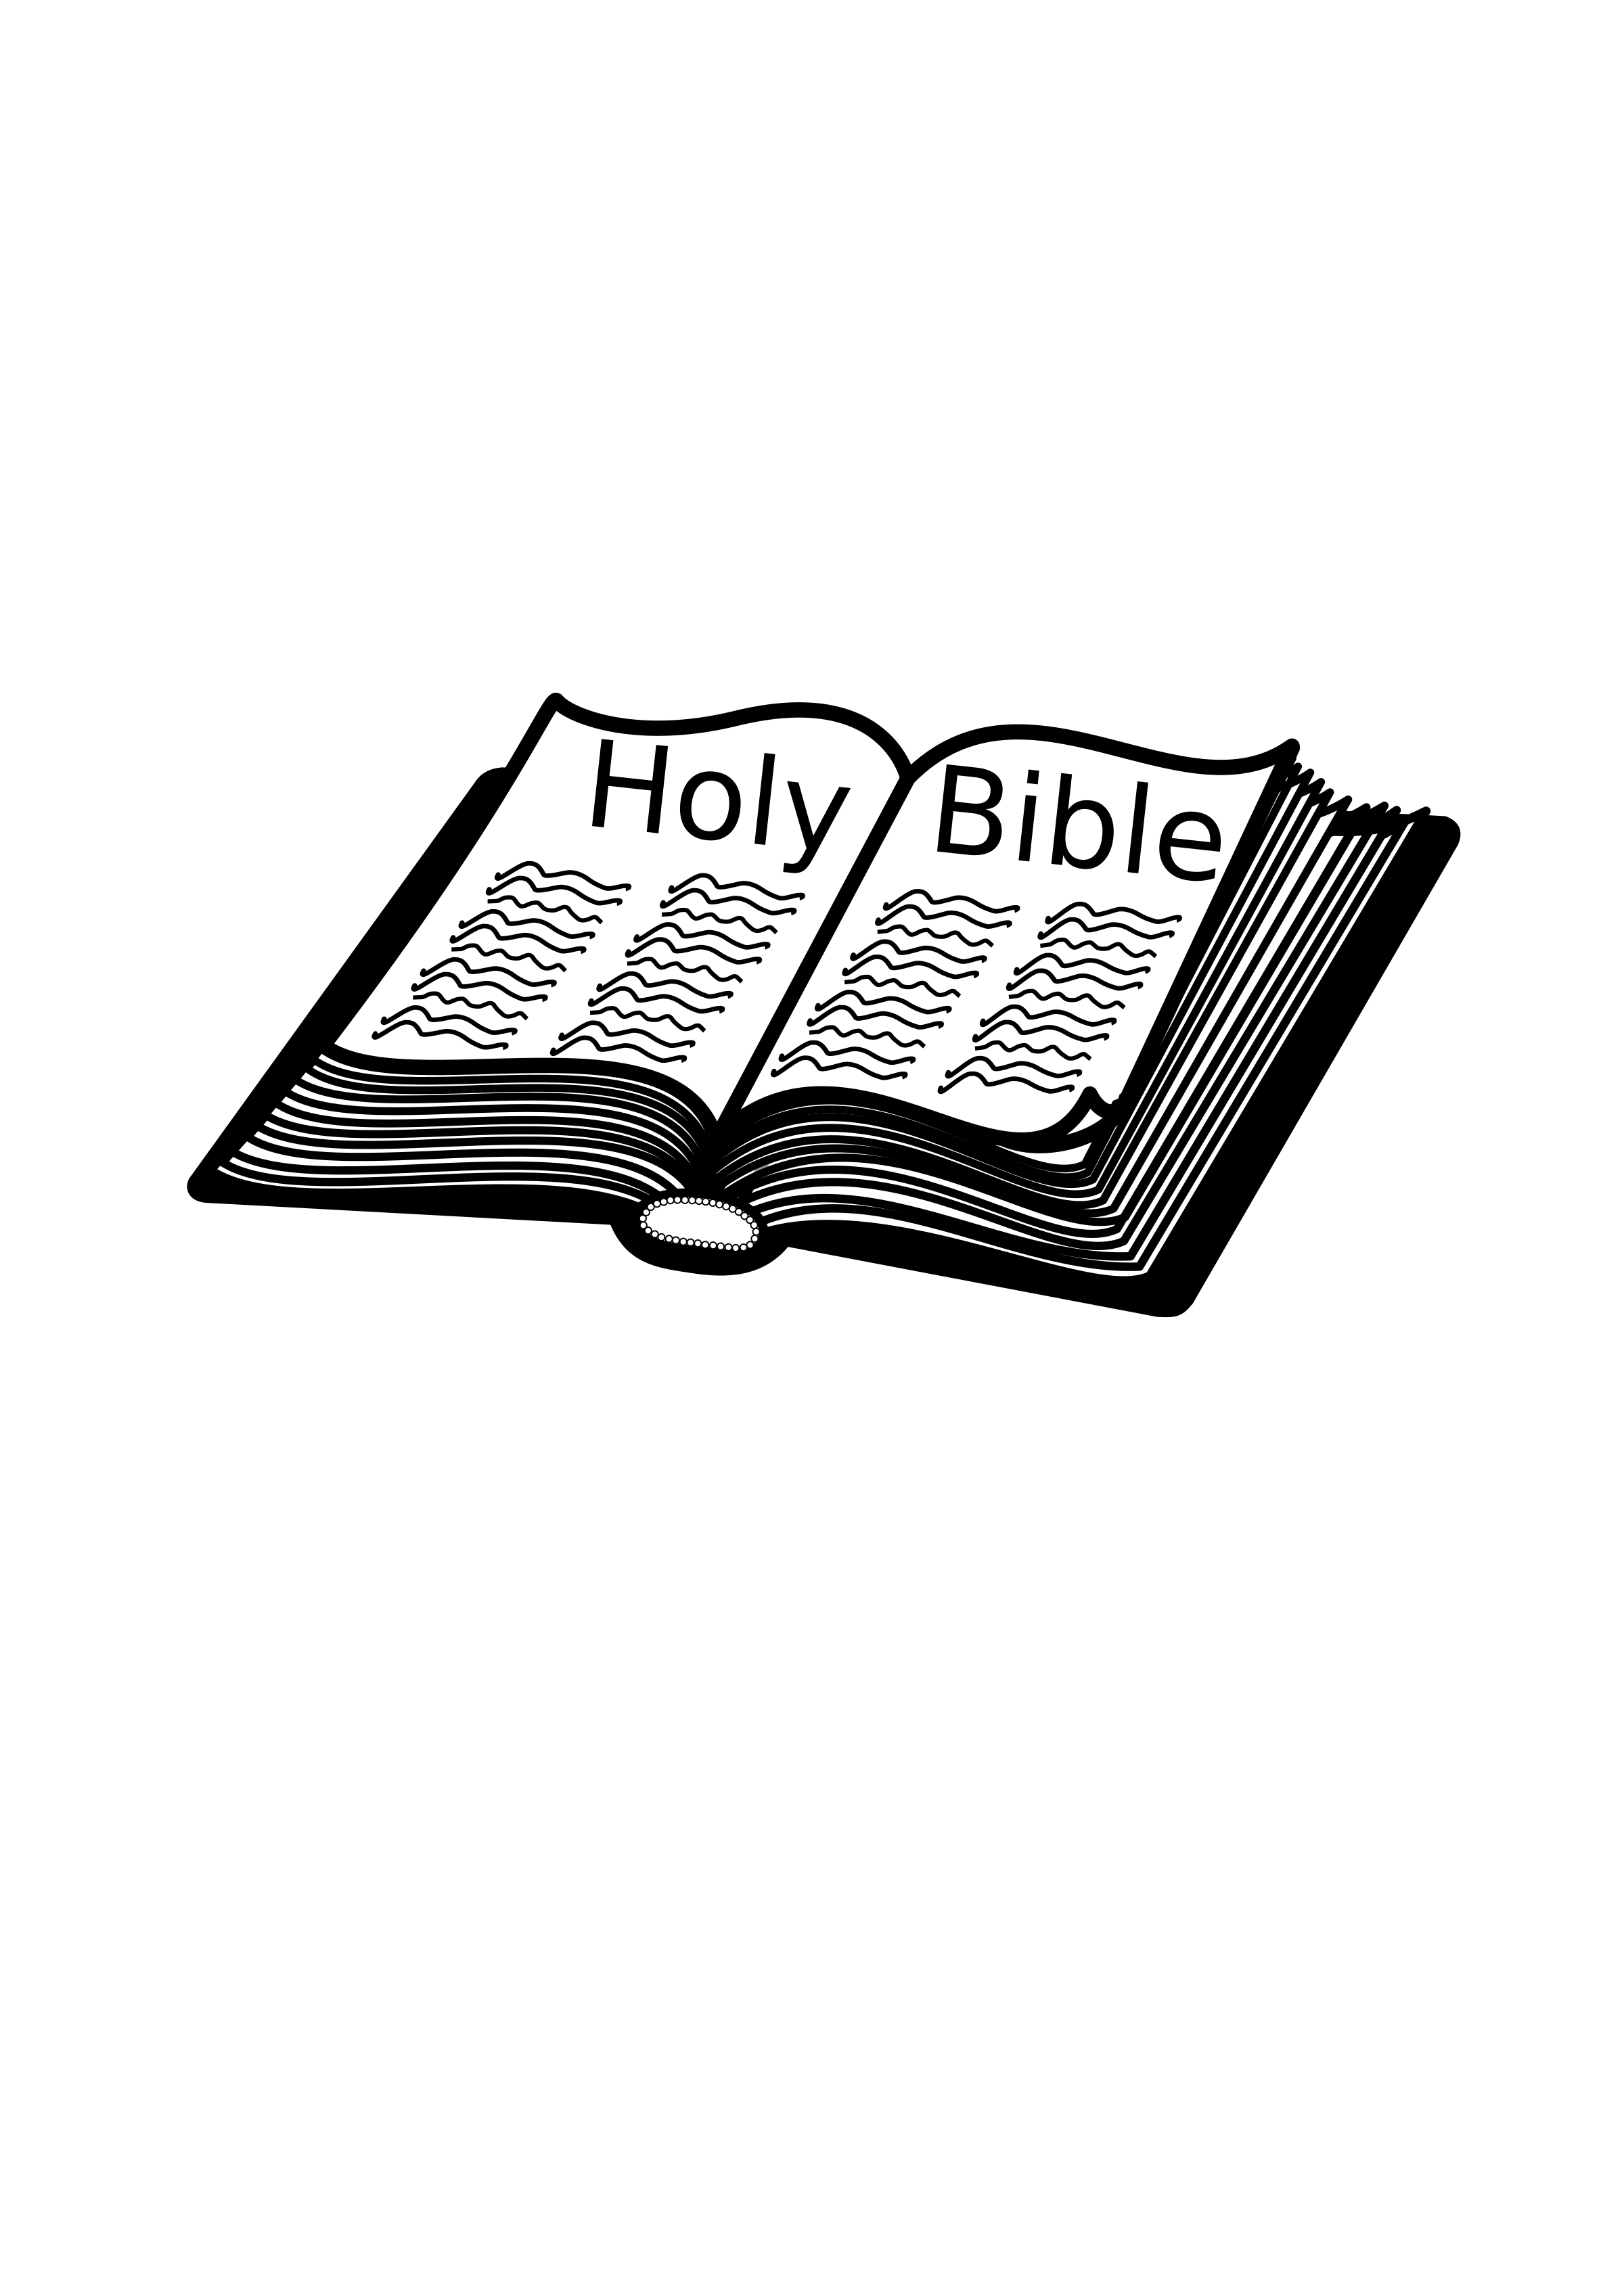 Holy Bible by D4v1d